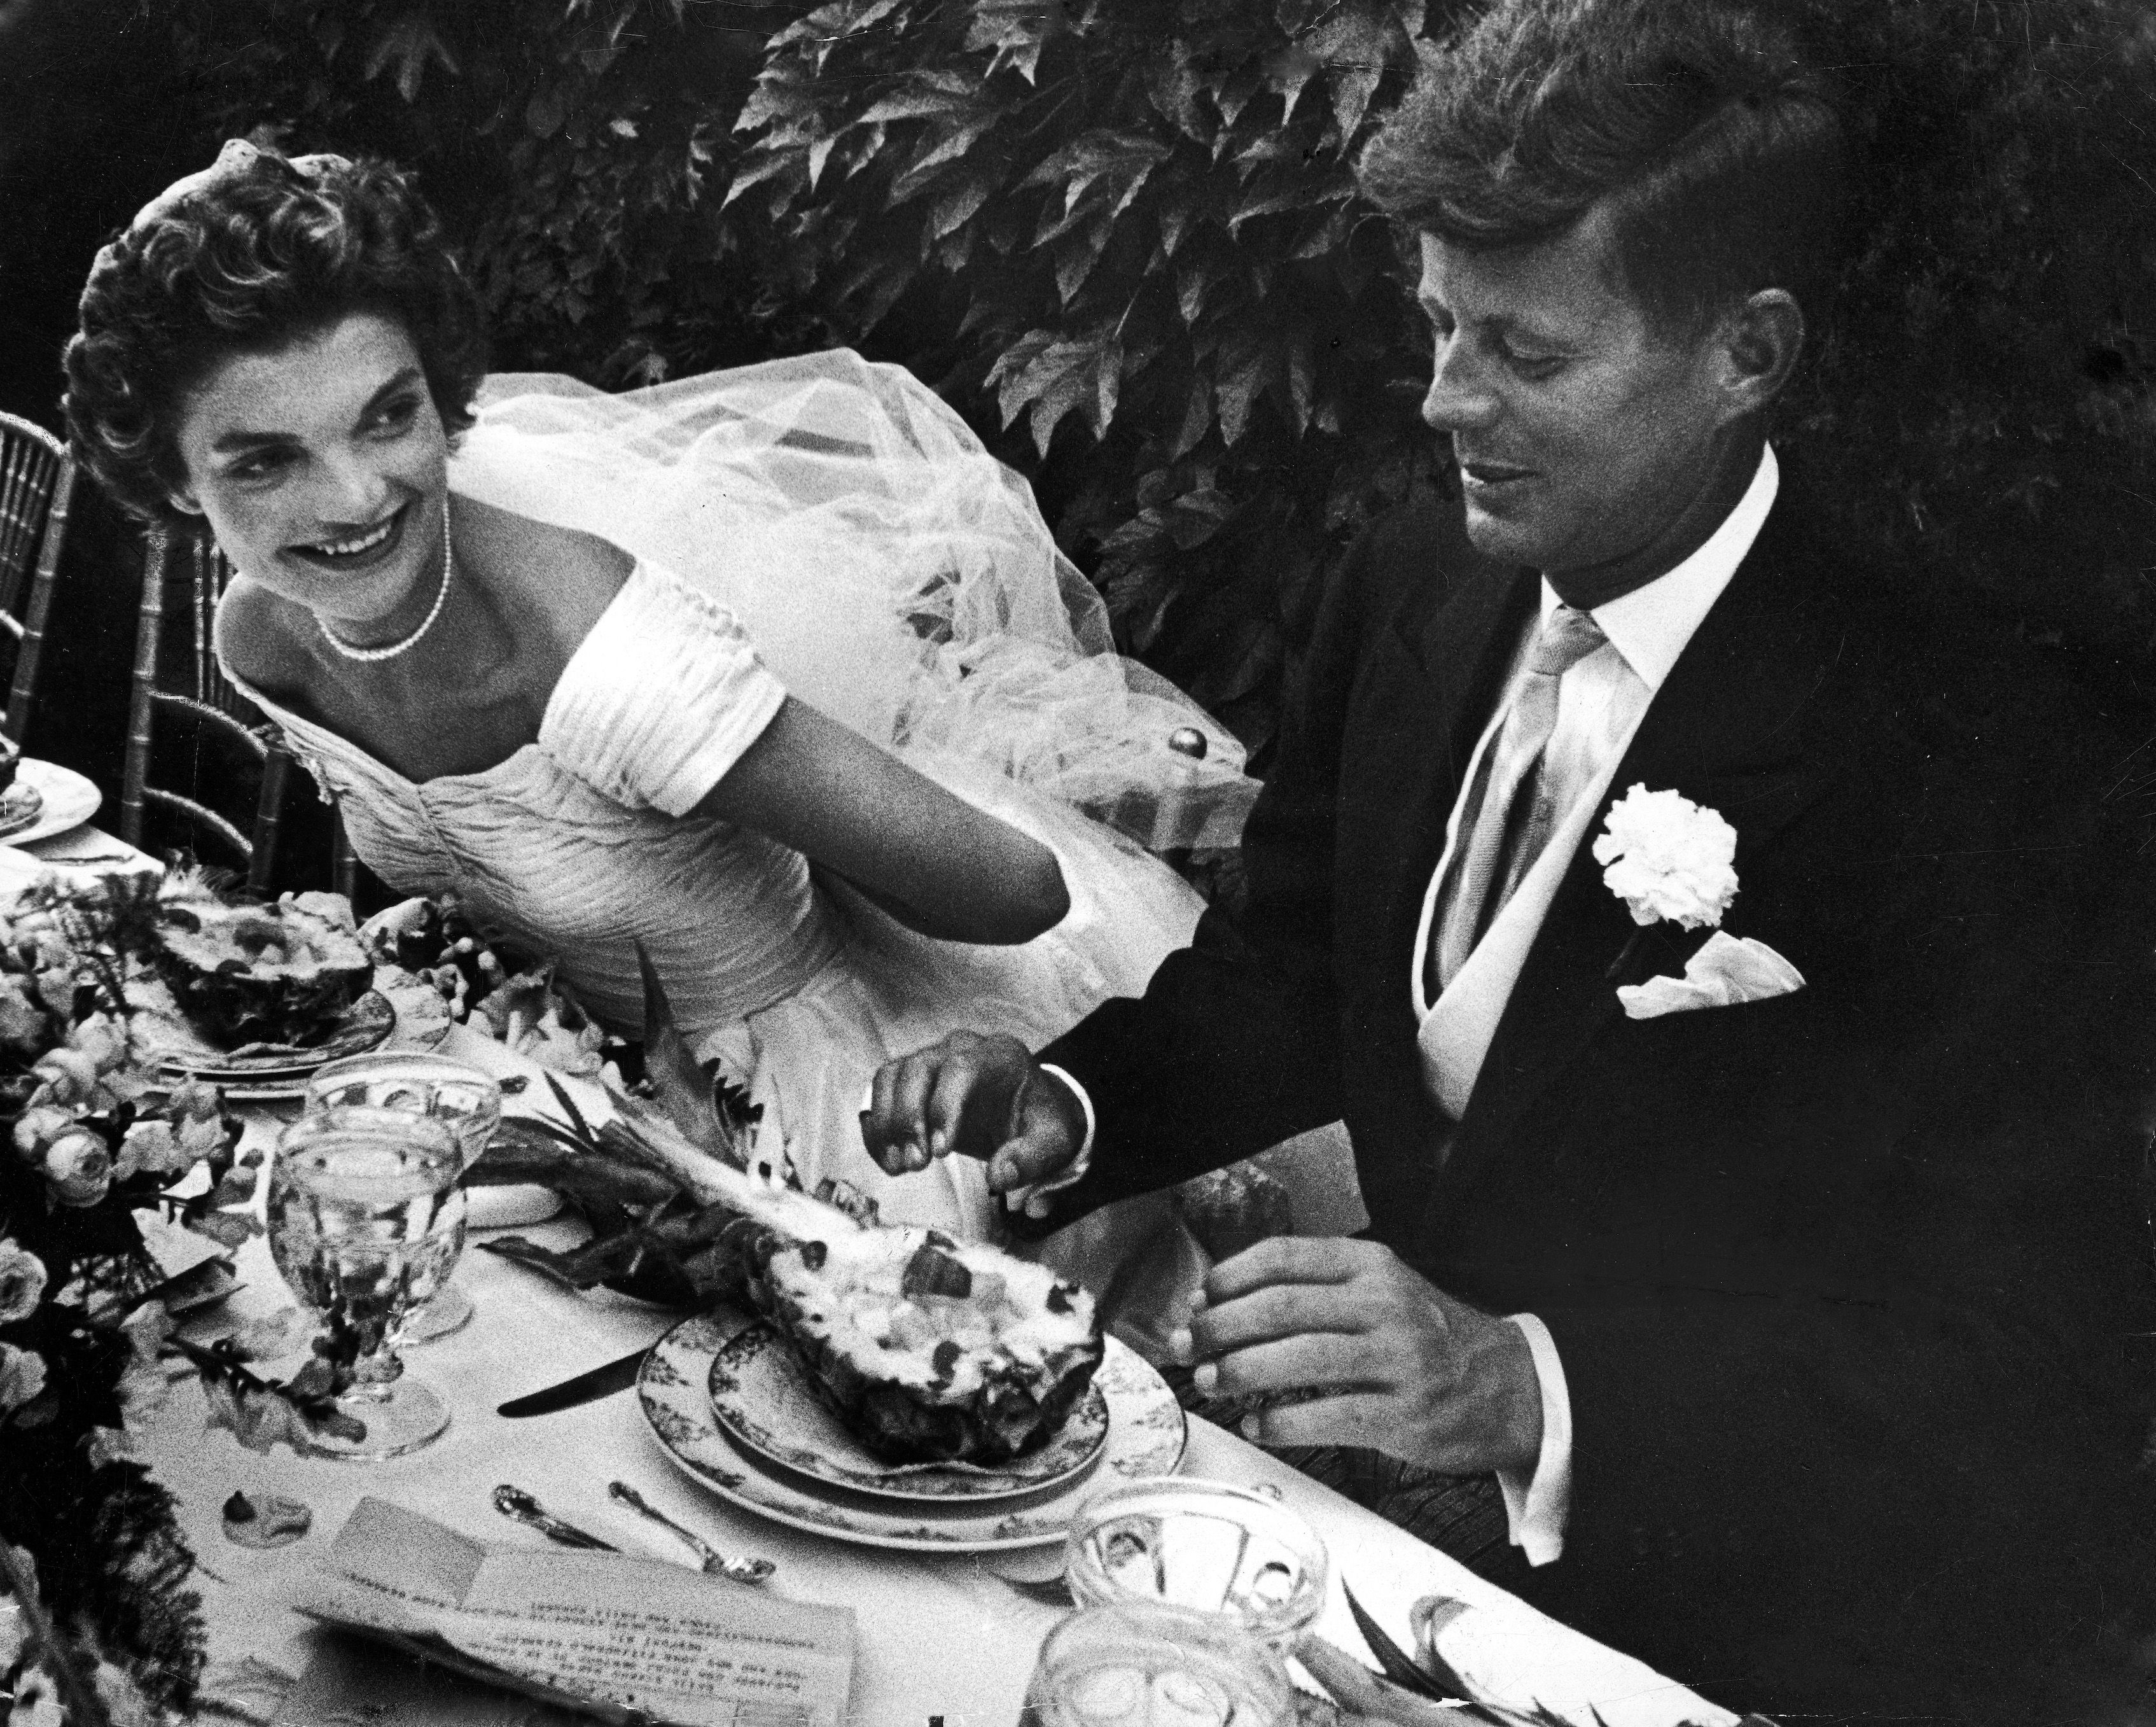 John and Jackie Kennedy at their wedding in Newport, Rhode Island.